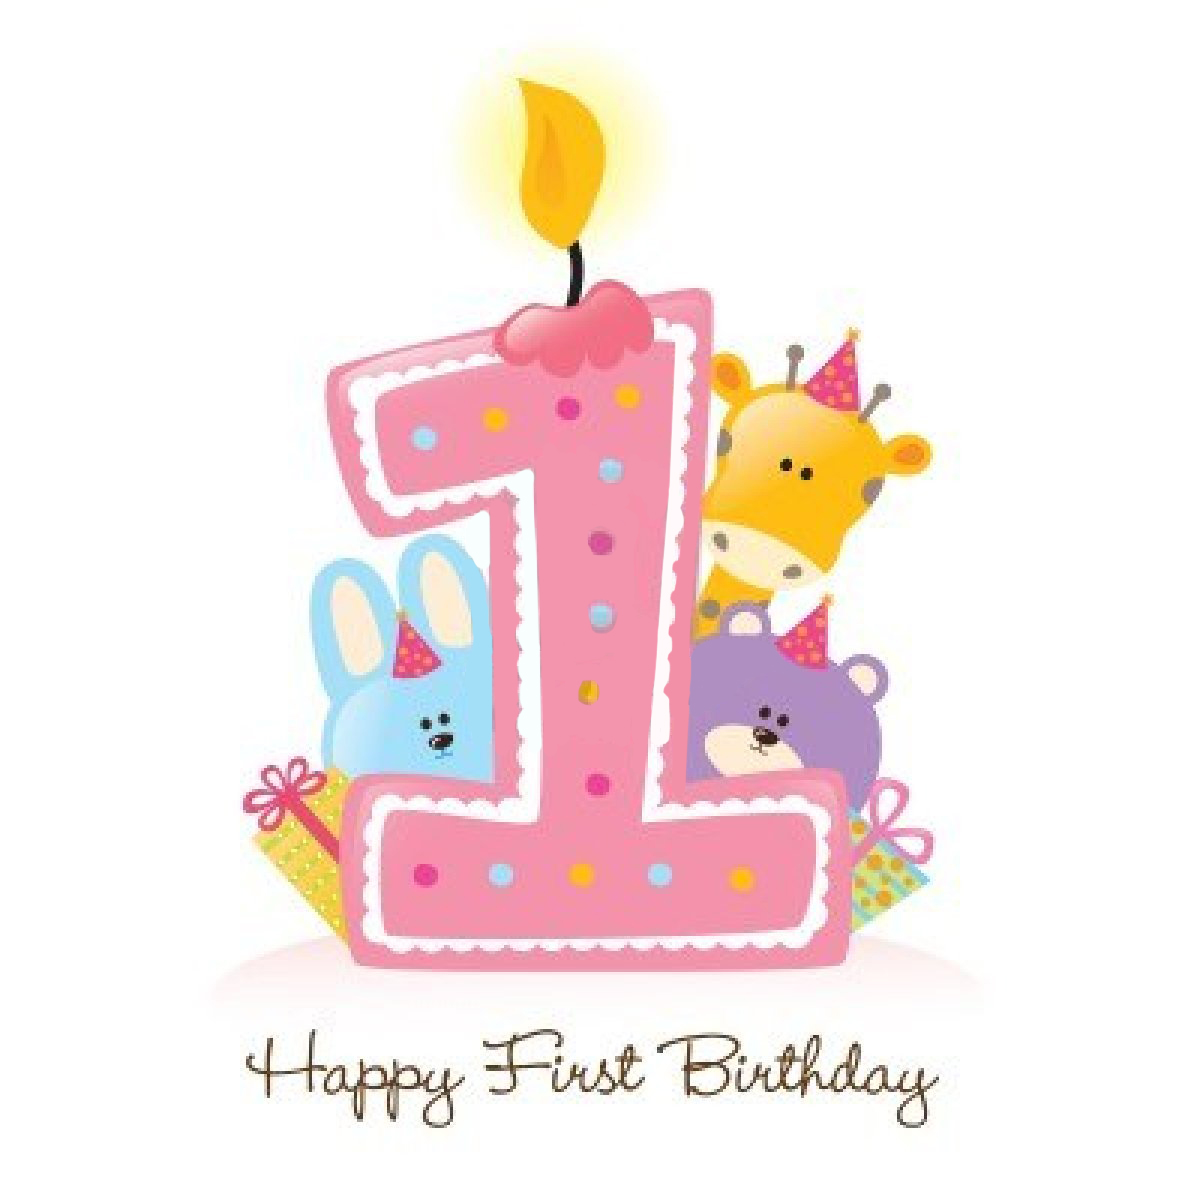 First Birthday Cake Clip Art Within my Secrets: 1 a...